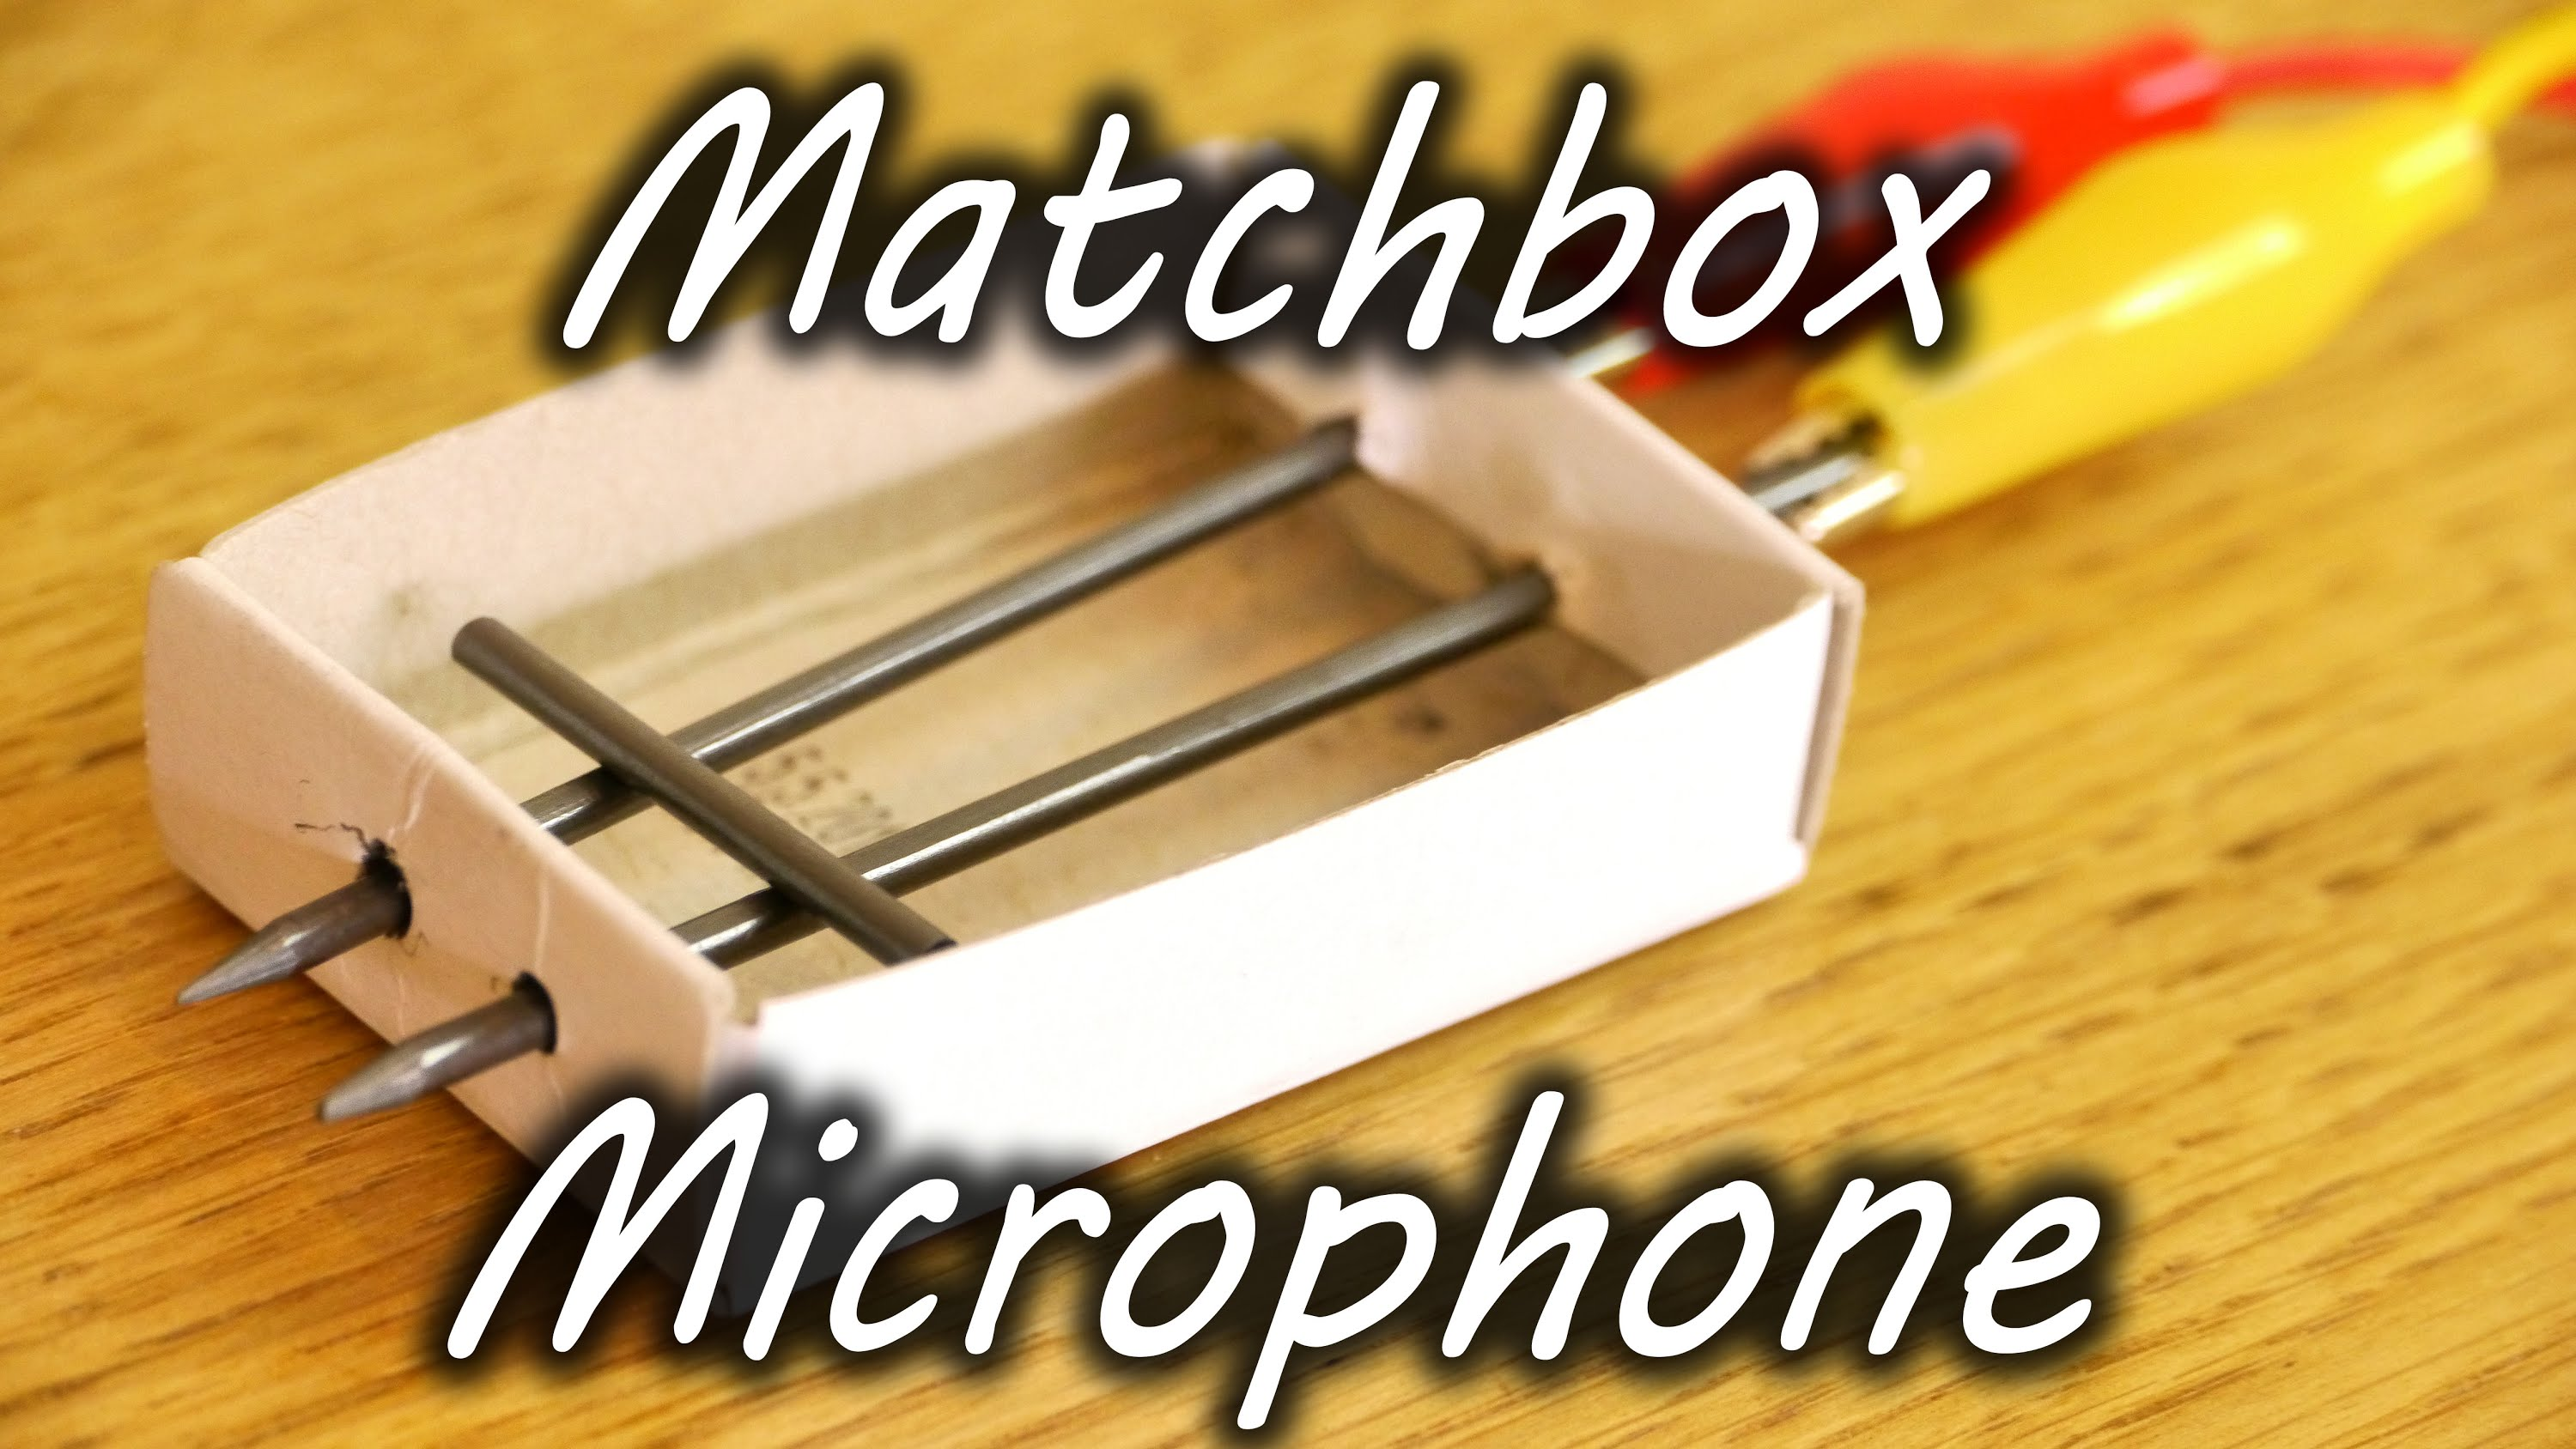 How To Make A Diy Matchbox Microphone